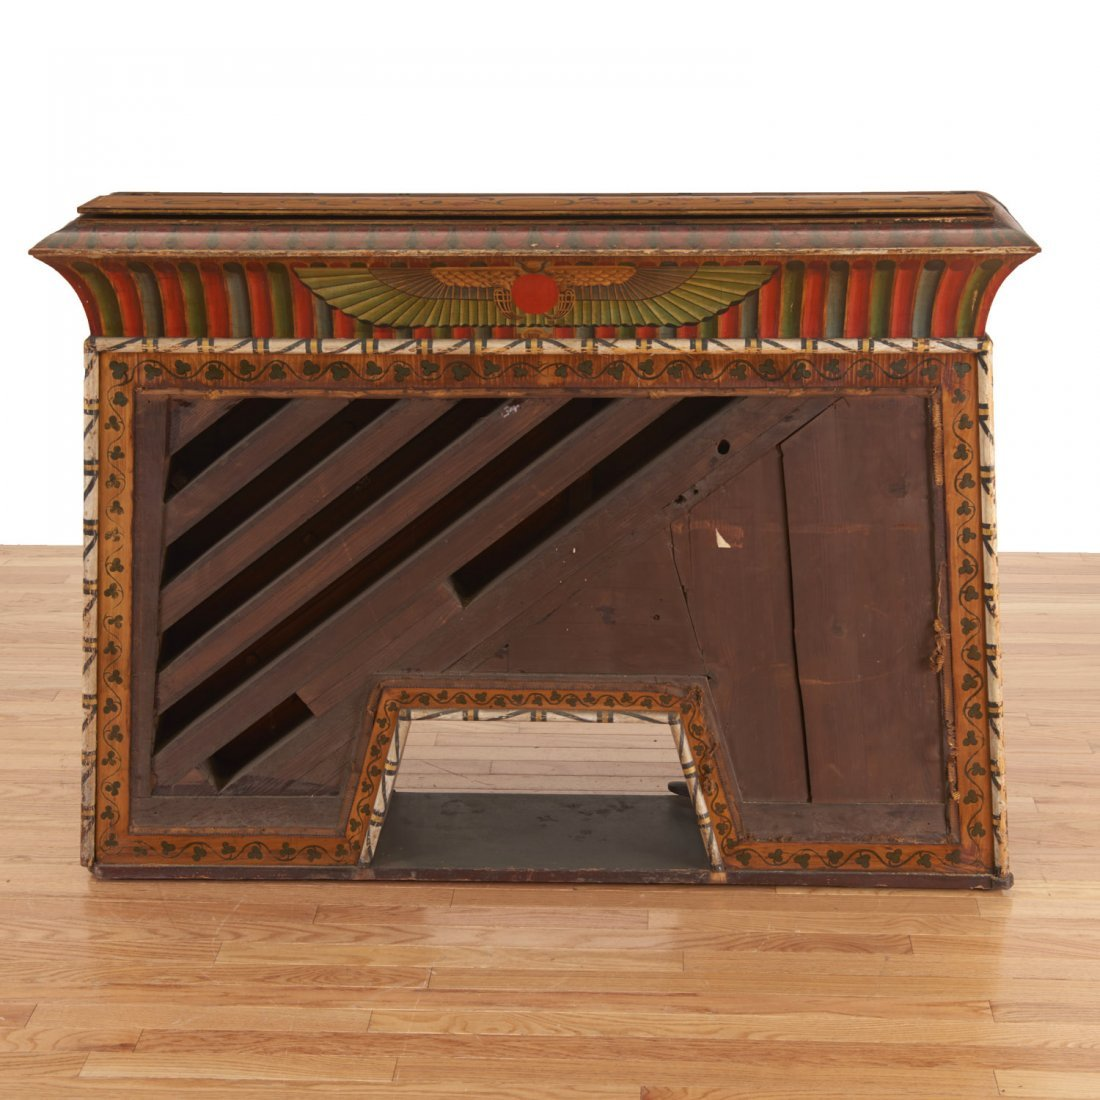 Egyptian Revival spinet piano - 10